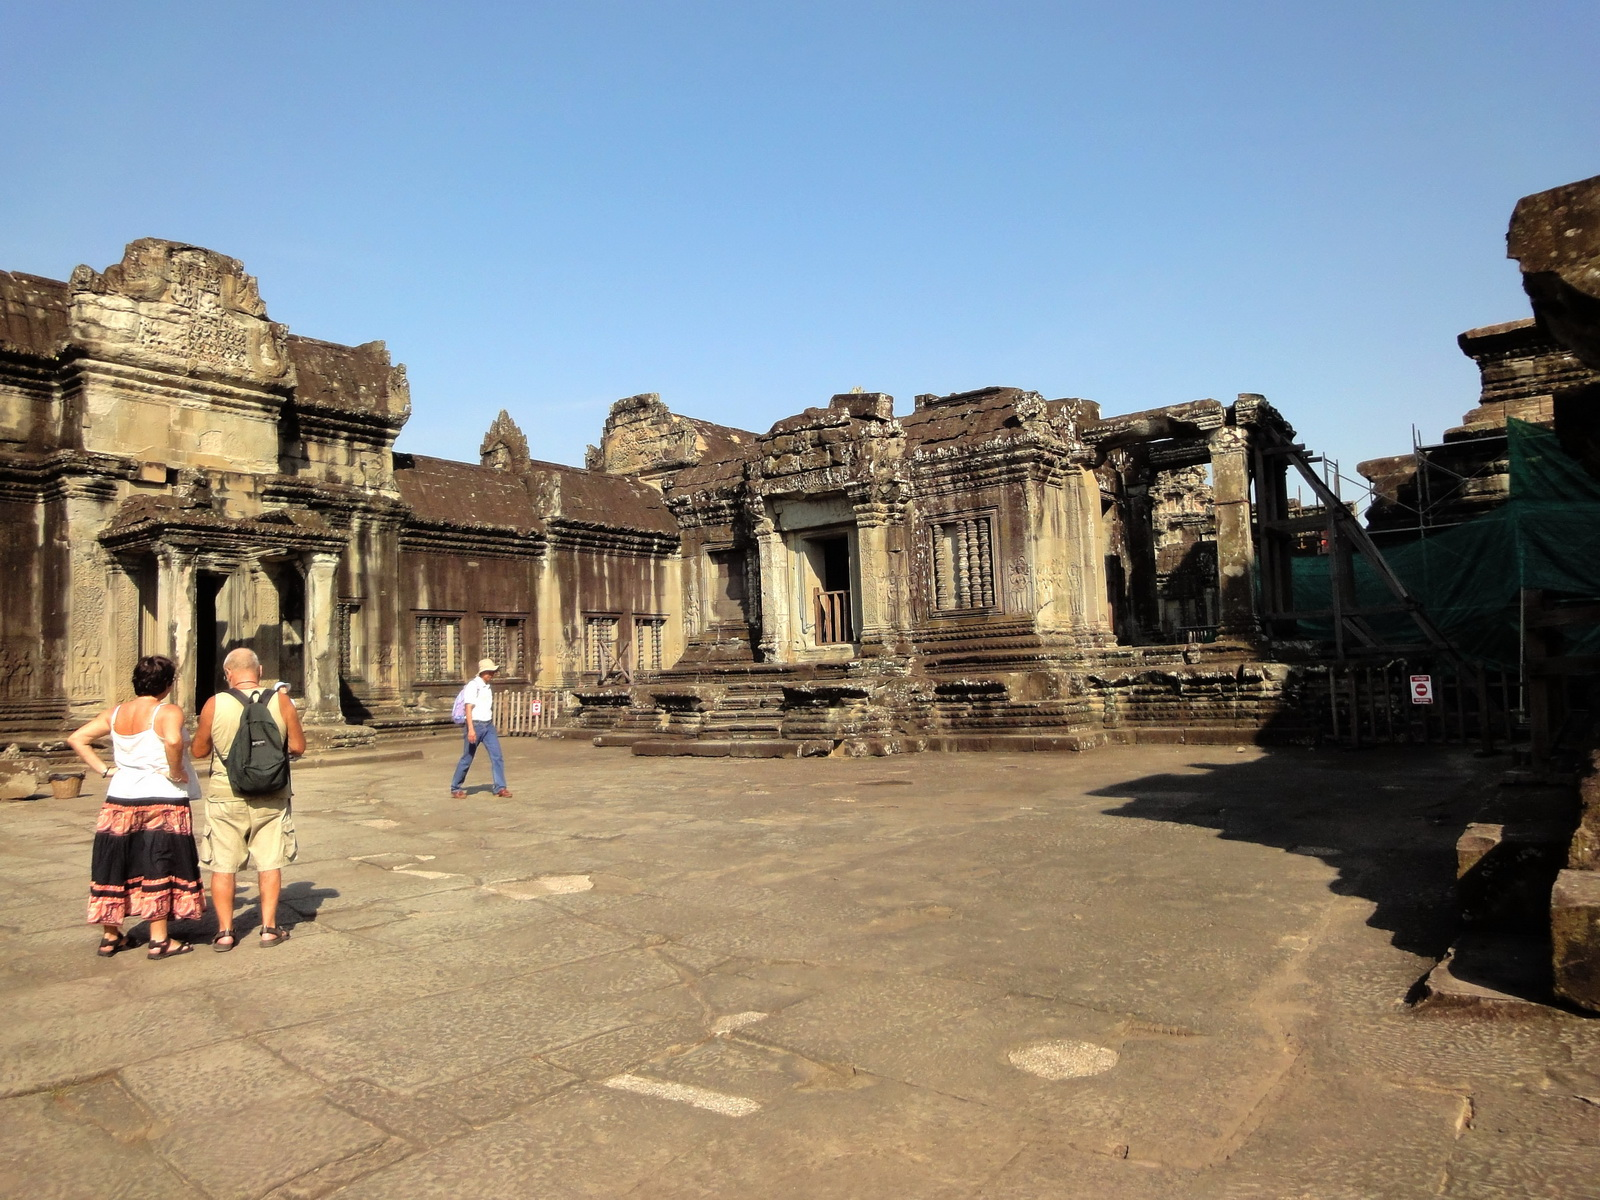 Angkor Wat Khmer architecture inner sanctuary courtyard 03